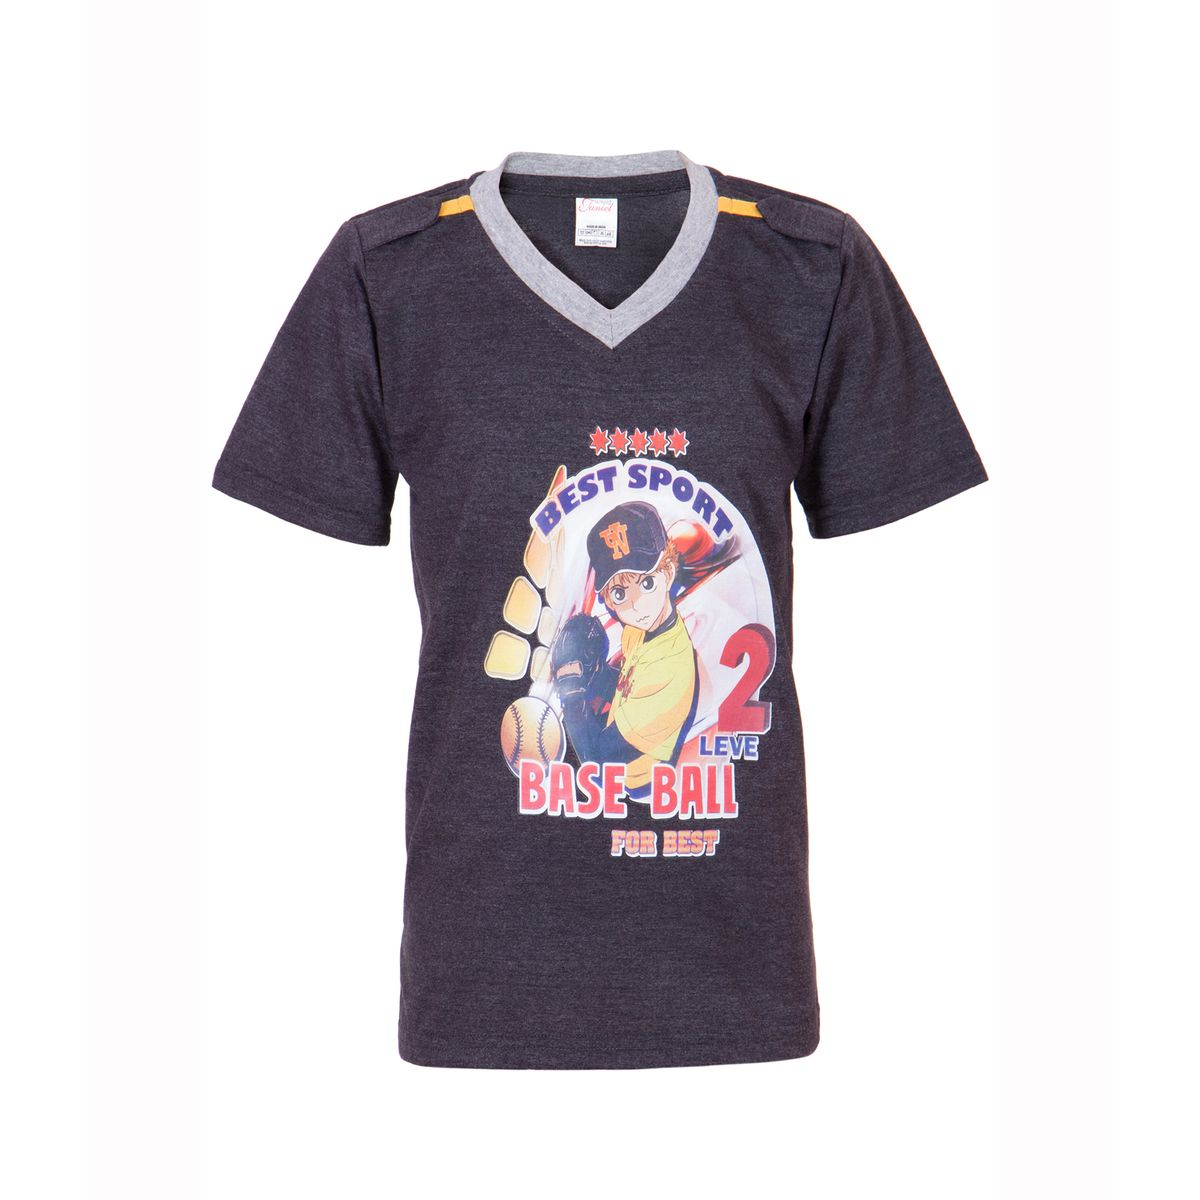 Ultrafit Junior Boys Cotton Multicolored T-Shirt- Pack of 2183